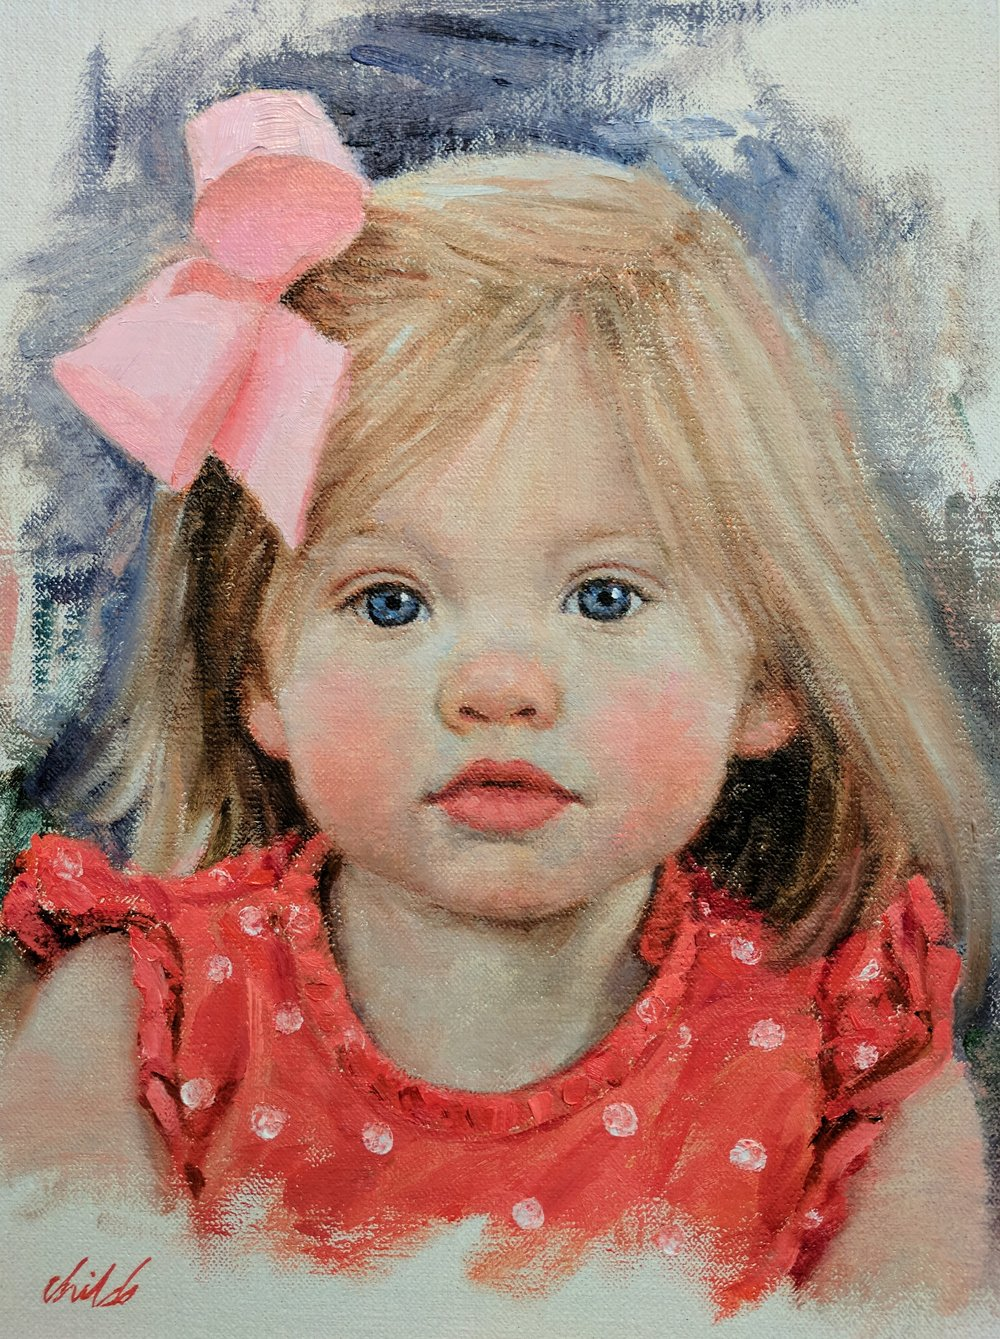 Young Girl with Pink Bow - 9x12